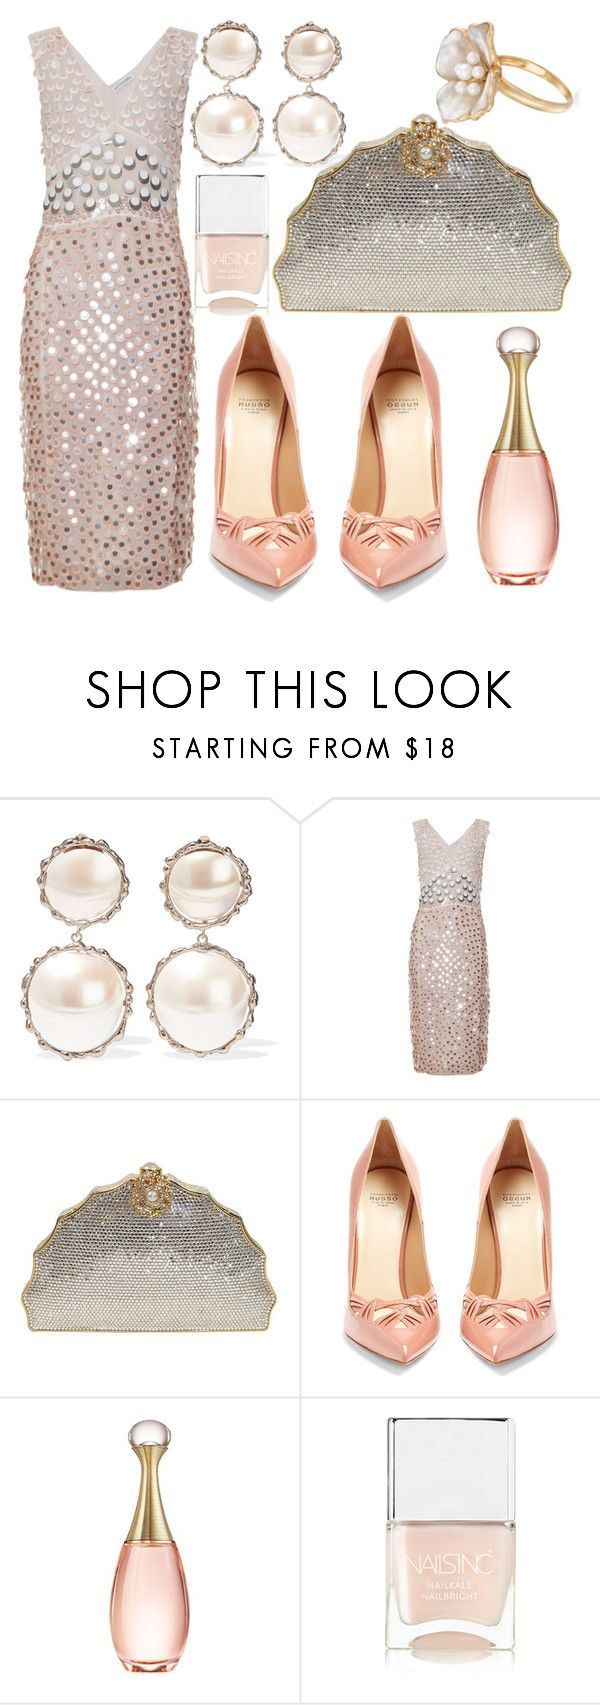 """""""Opalescent"""" by fashionforwarded ❤ liked on Polyvore featuring Rosantica, Altuzarra, Judith Leiber, Francesco Russo, Christian Dior, Nails Inc., Ross-Simons and dreamydresses"""